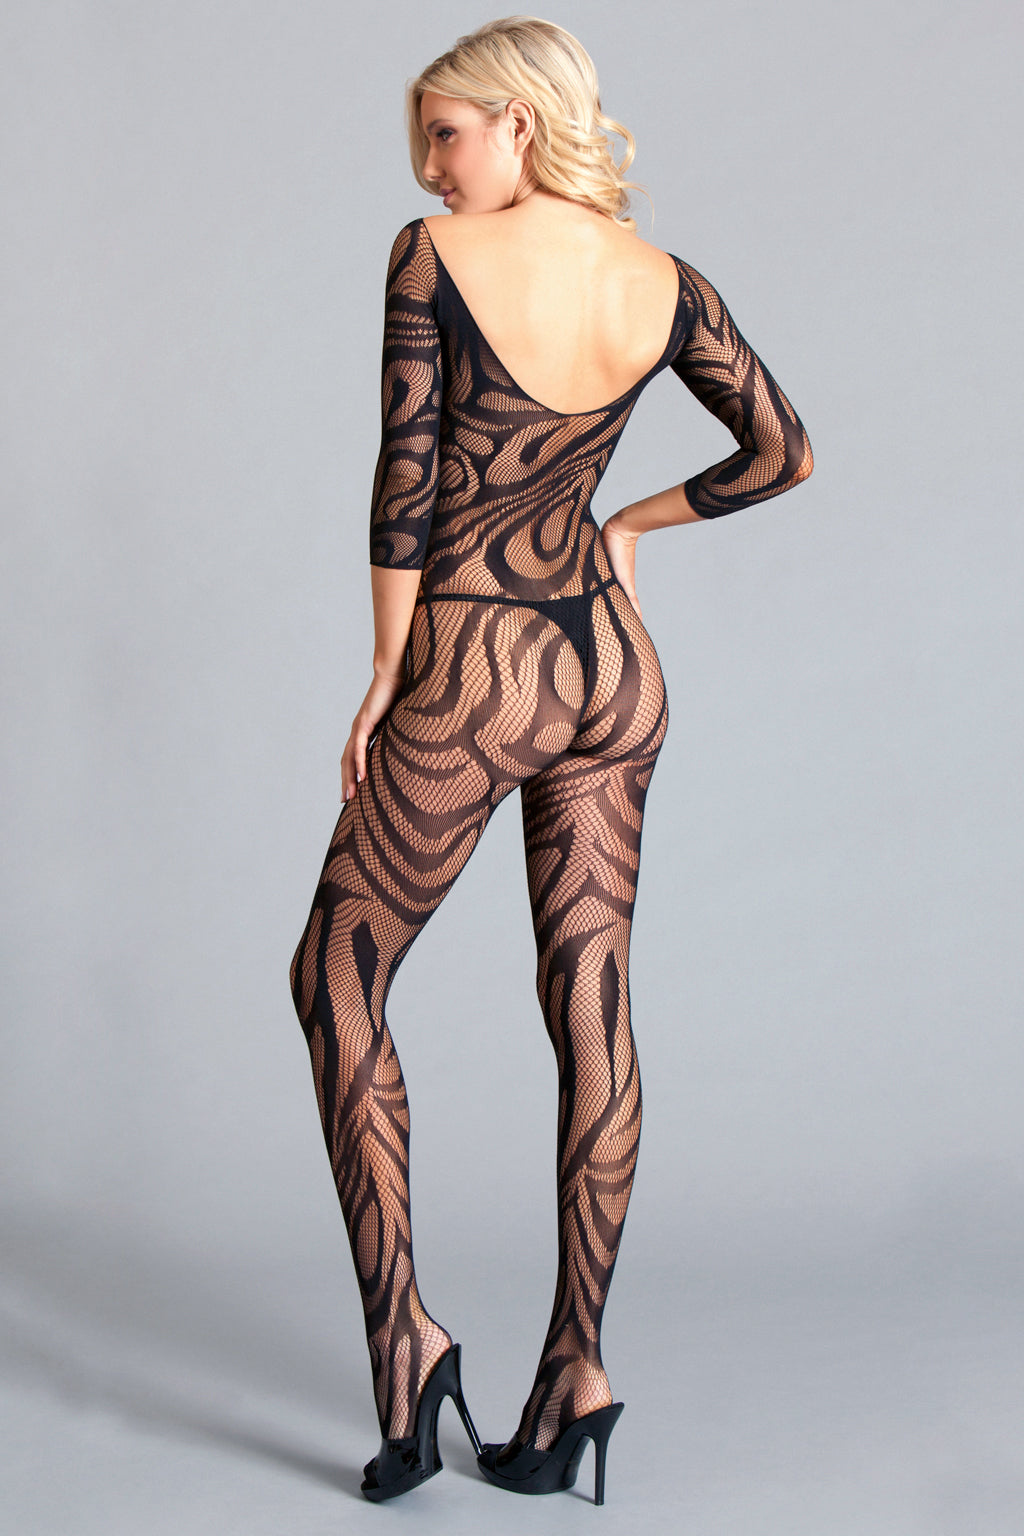 Bewitching Bodystockings Lingerie- La La Trends